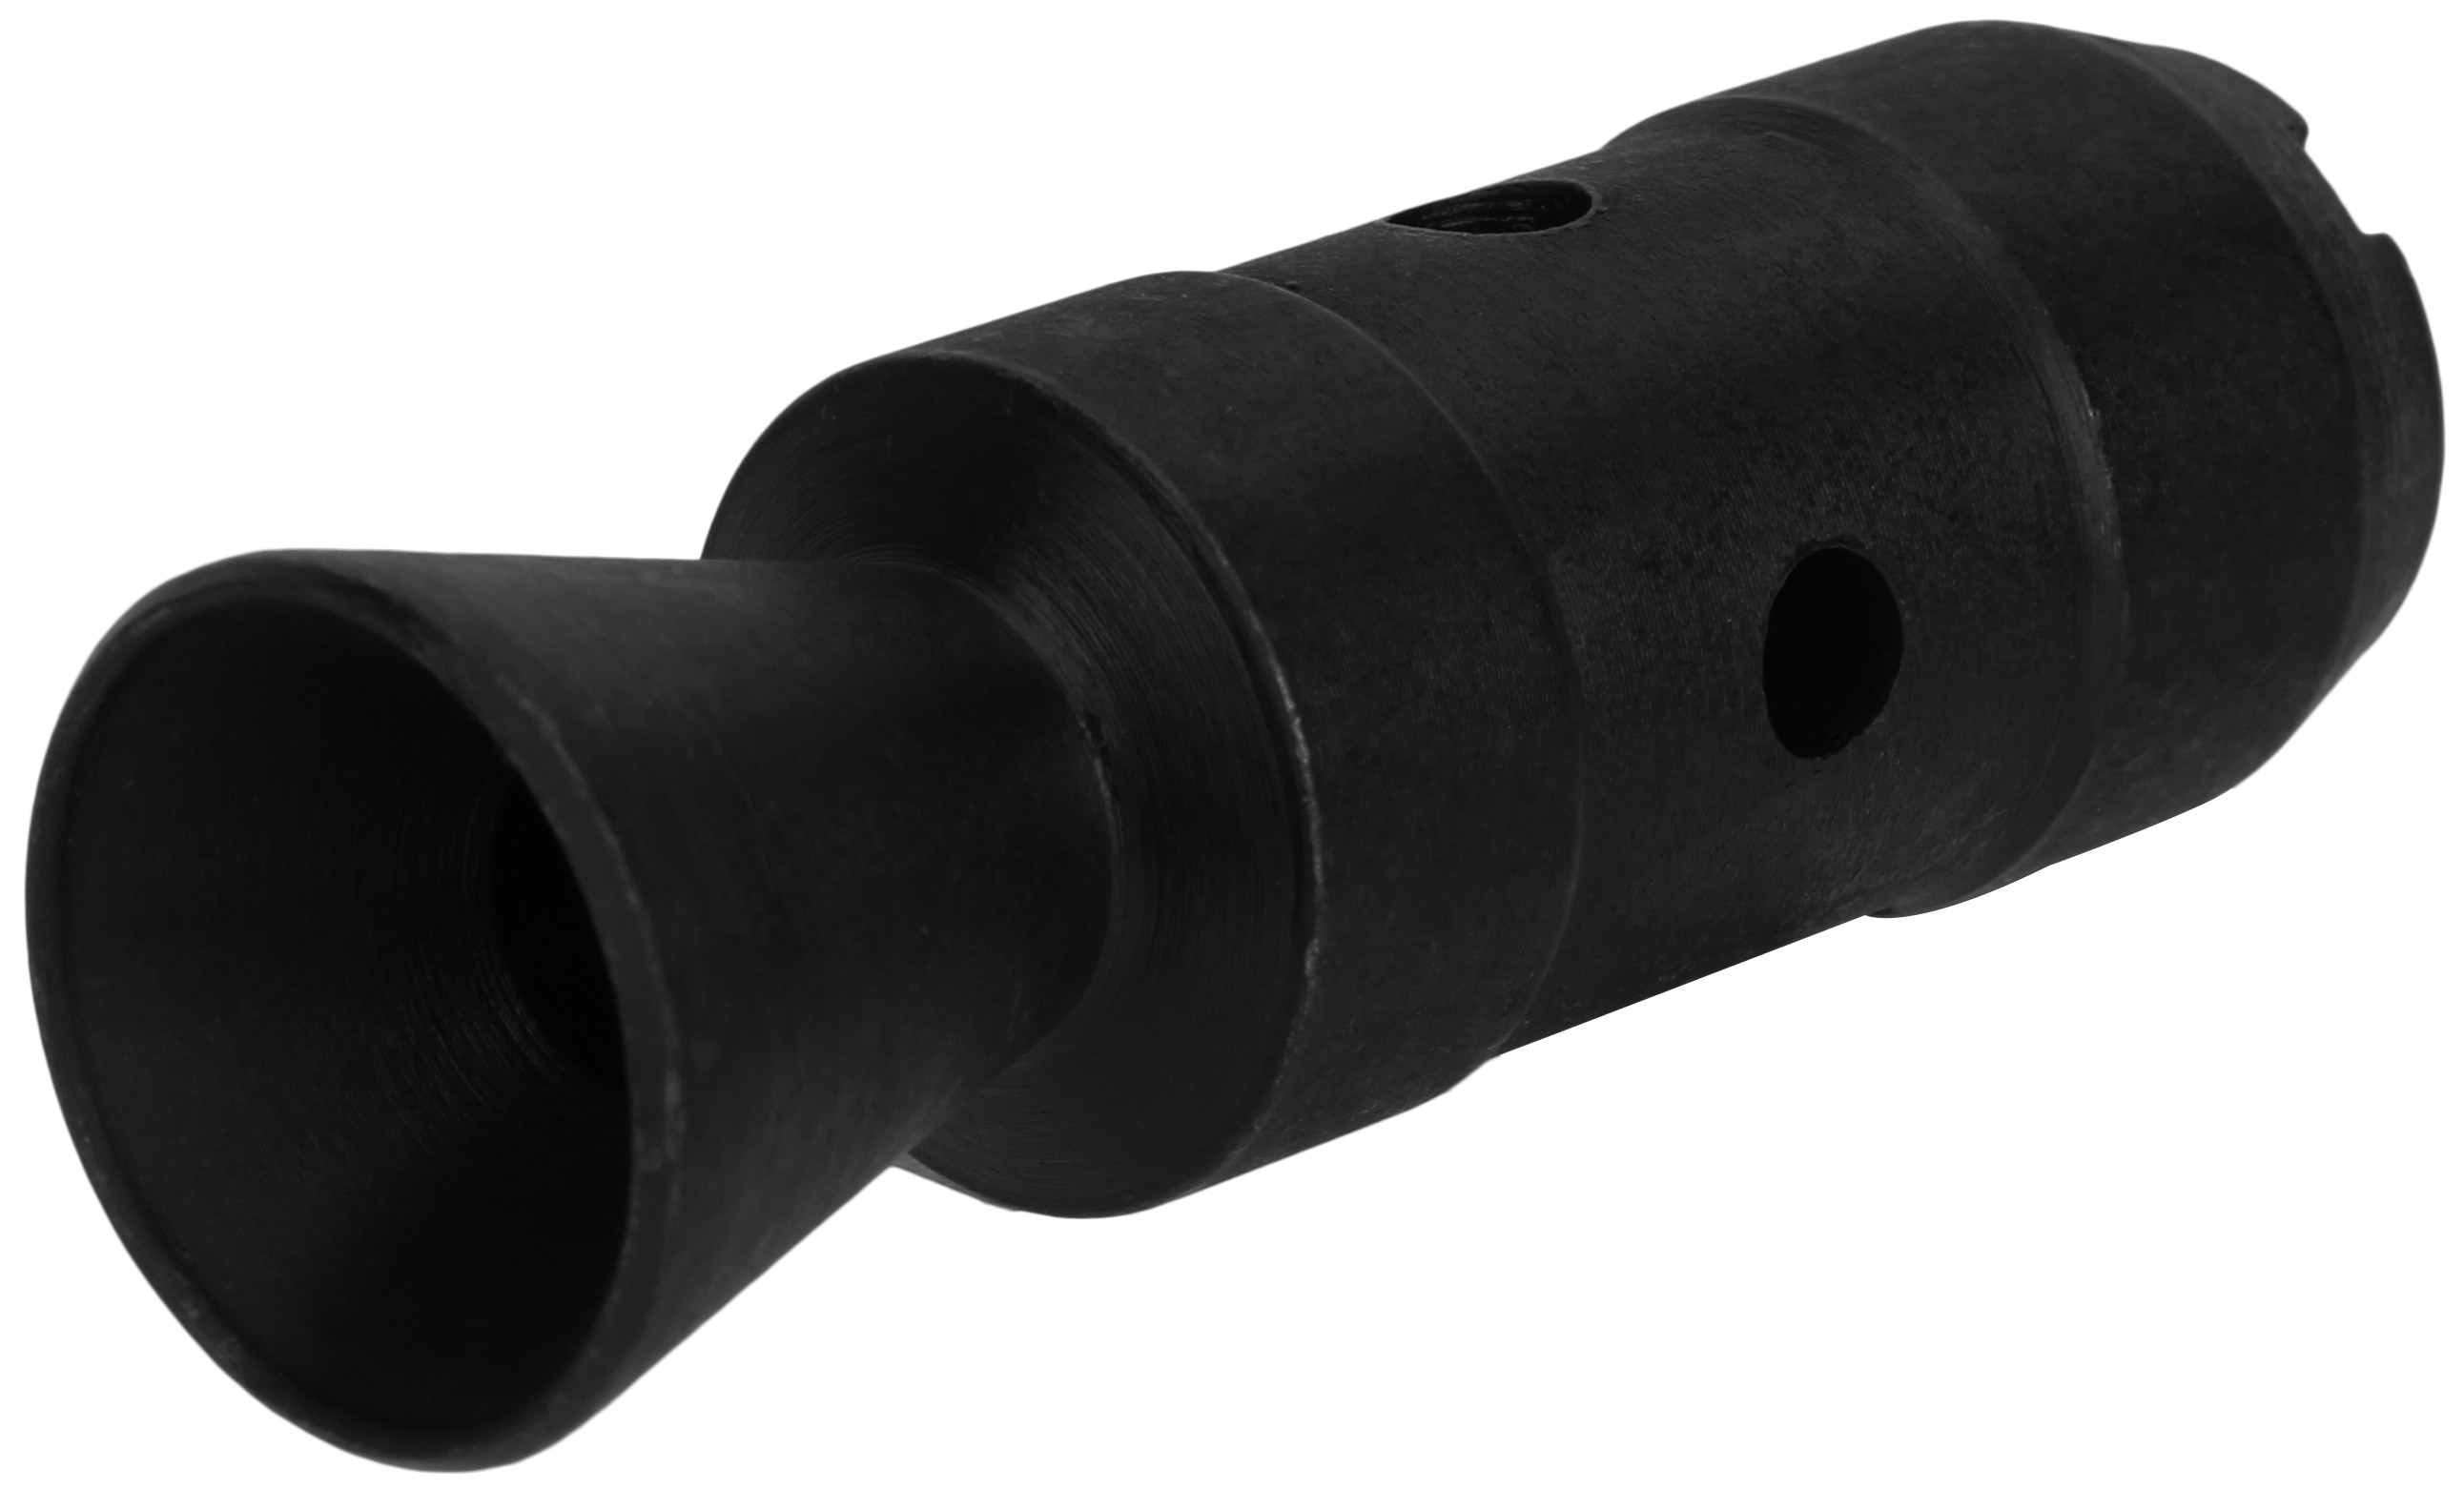 14-1 LH Thread Bell Shape Muzzle Brake (7 62x39)